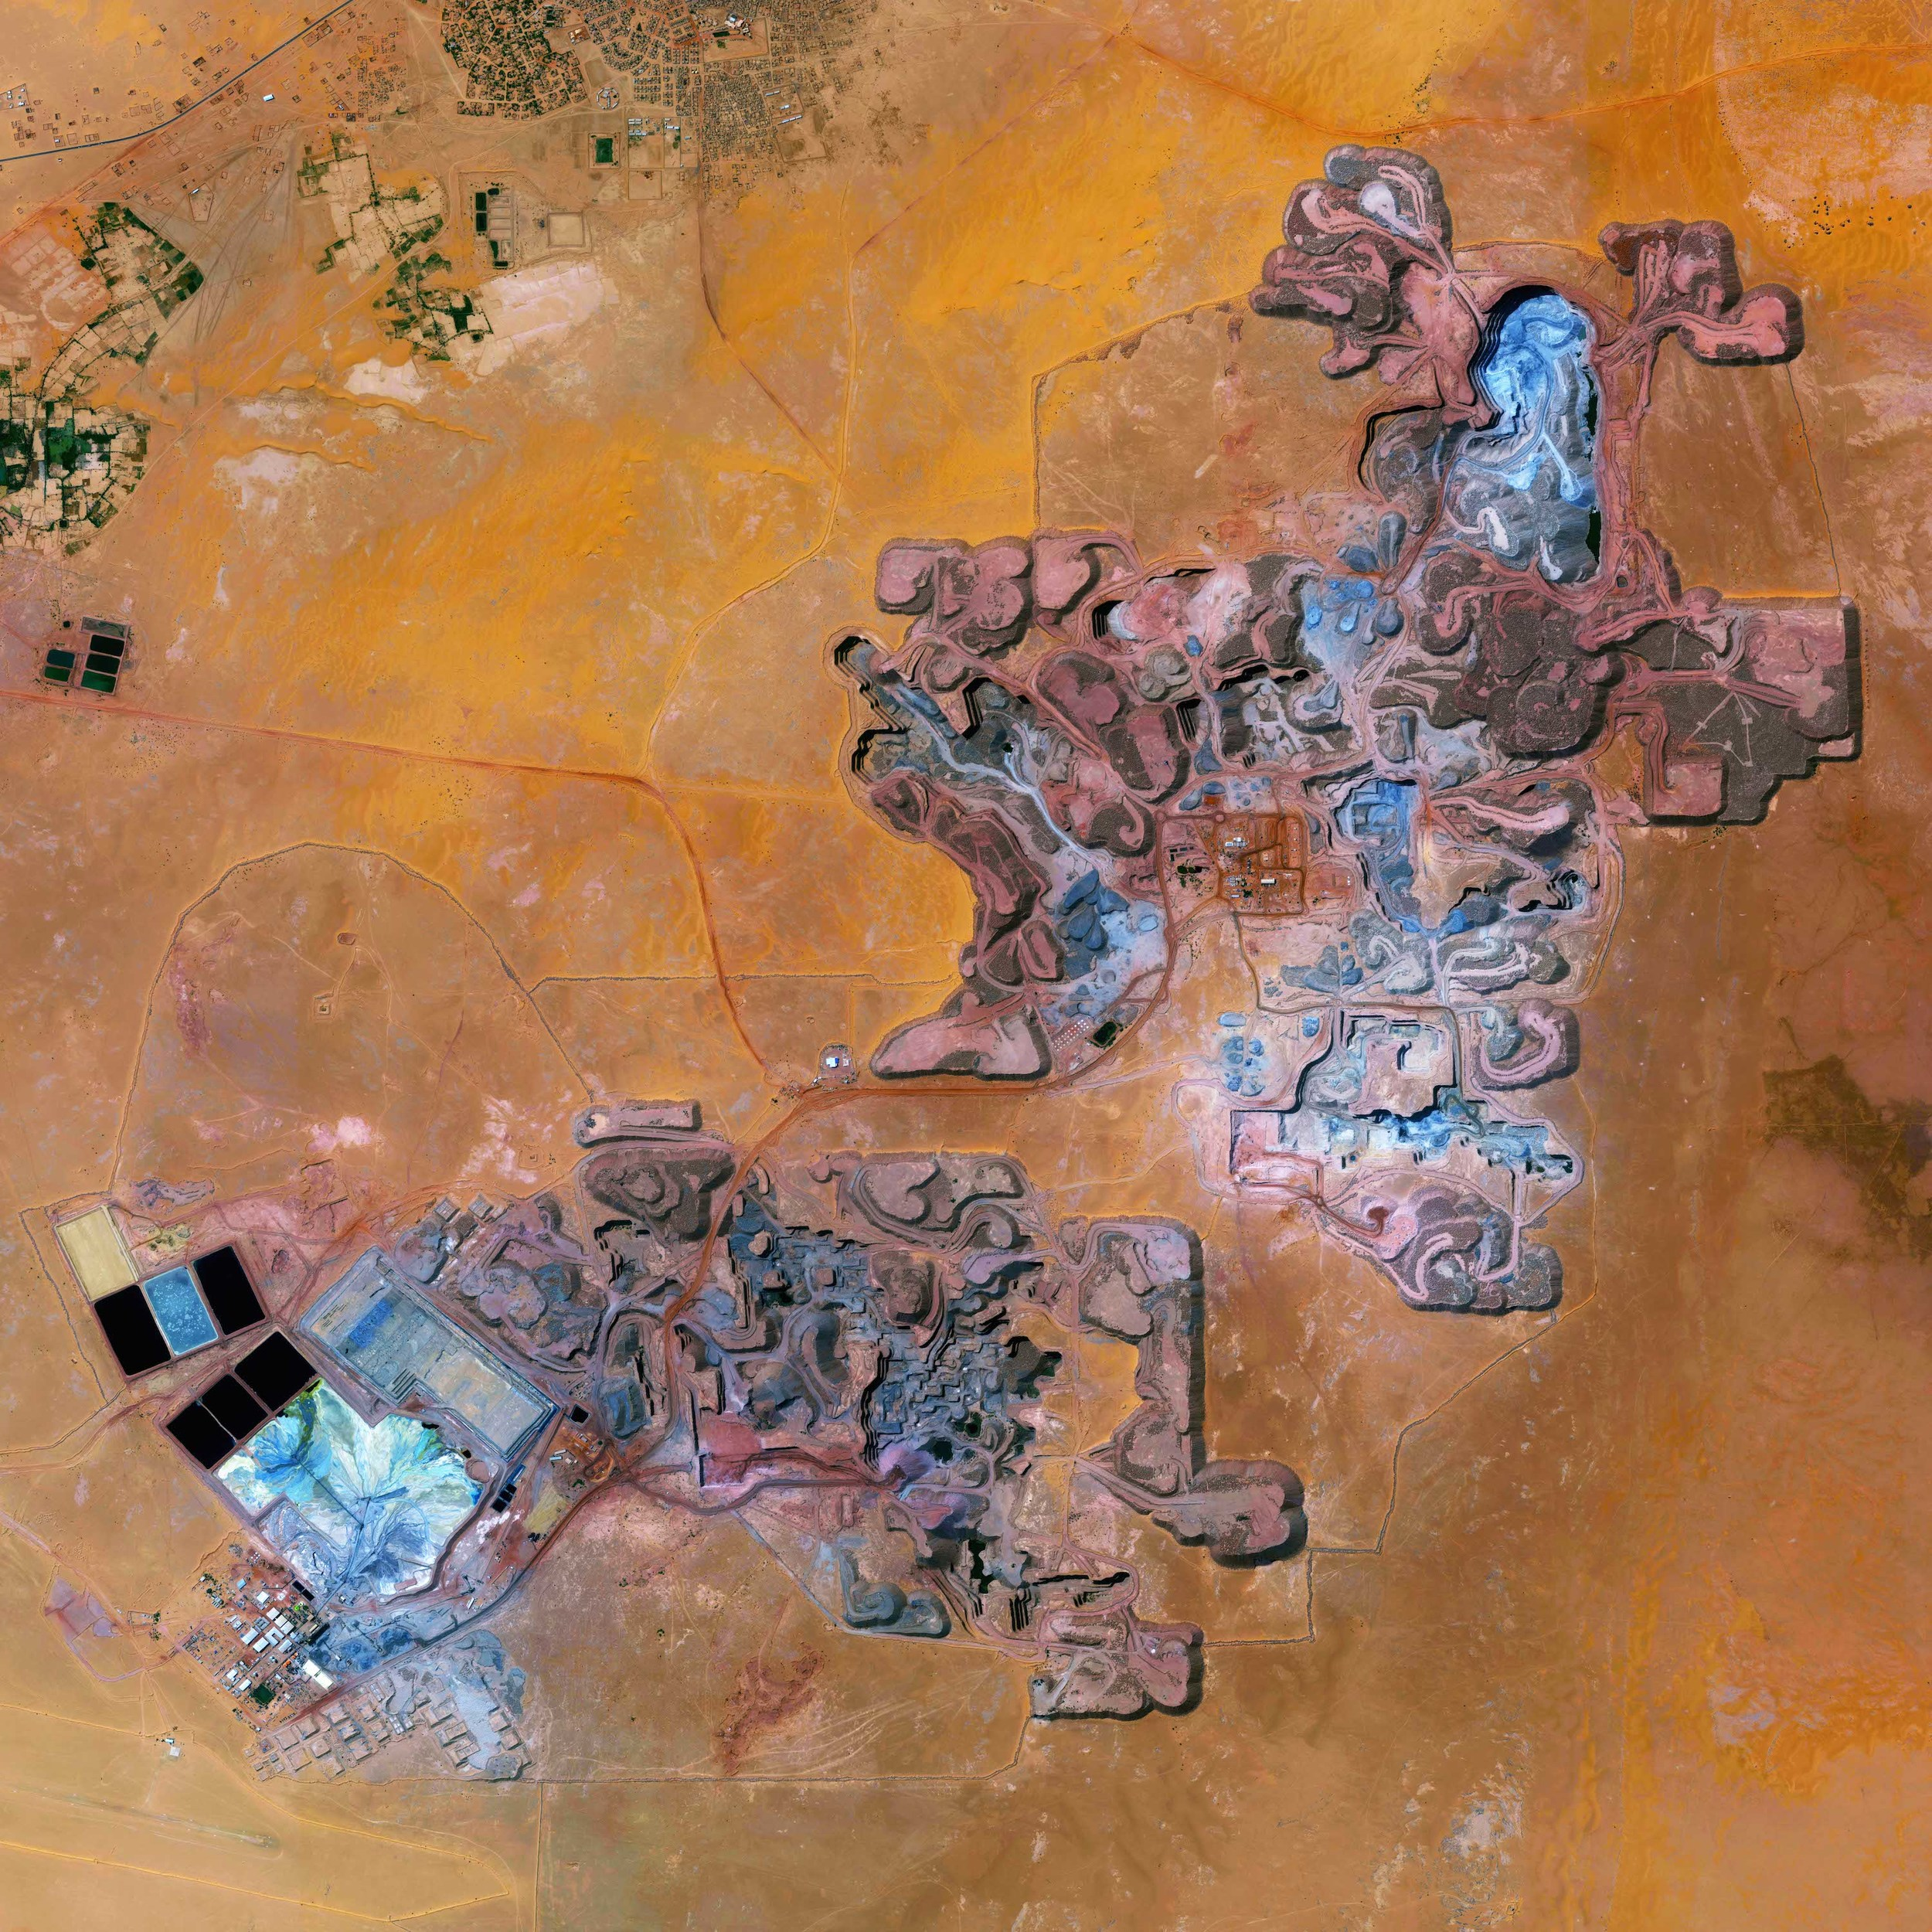 10/31/2015  Arlit Uranium Mine  Arlit, Niger  18°44′N 7°23′E    The Arlit Uranium mine is located in Arlit, Niger. French nuclear power generation as well as the French nuclear weapons program are dependent on the uranium that is extracted from the mine - more than 3400 tonnes per year.